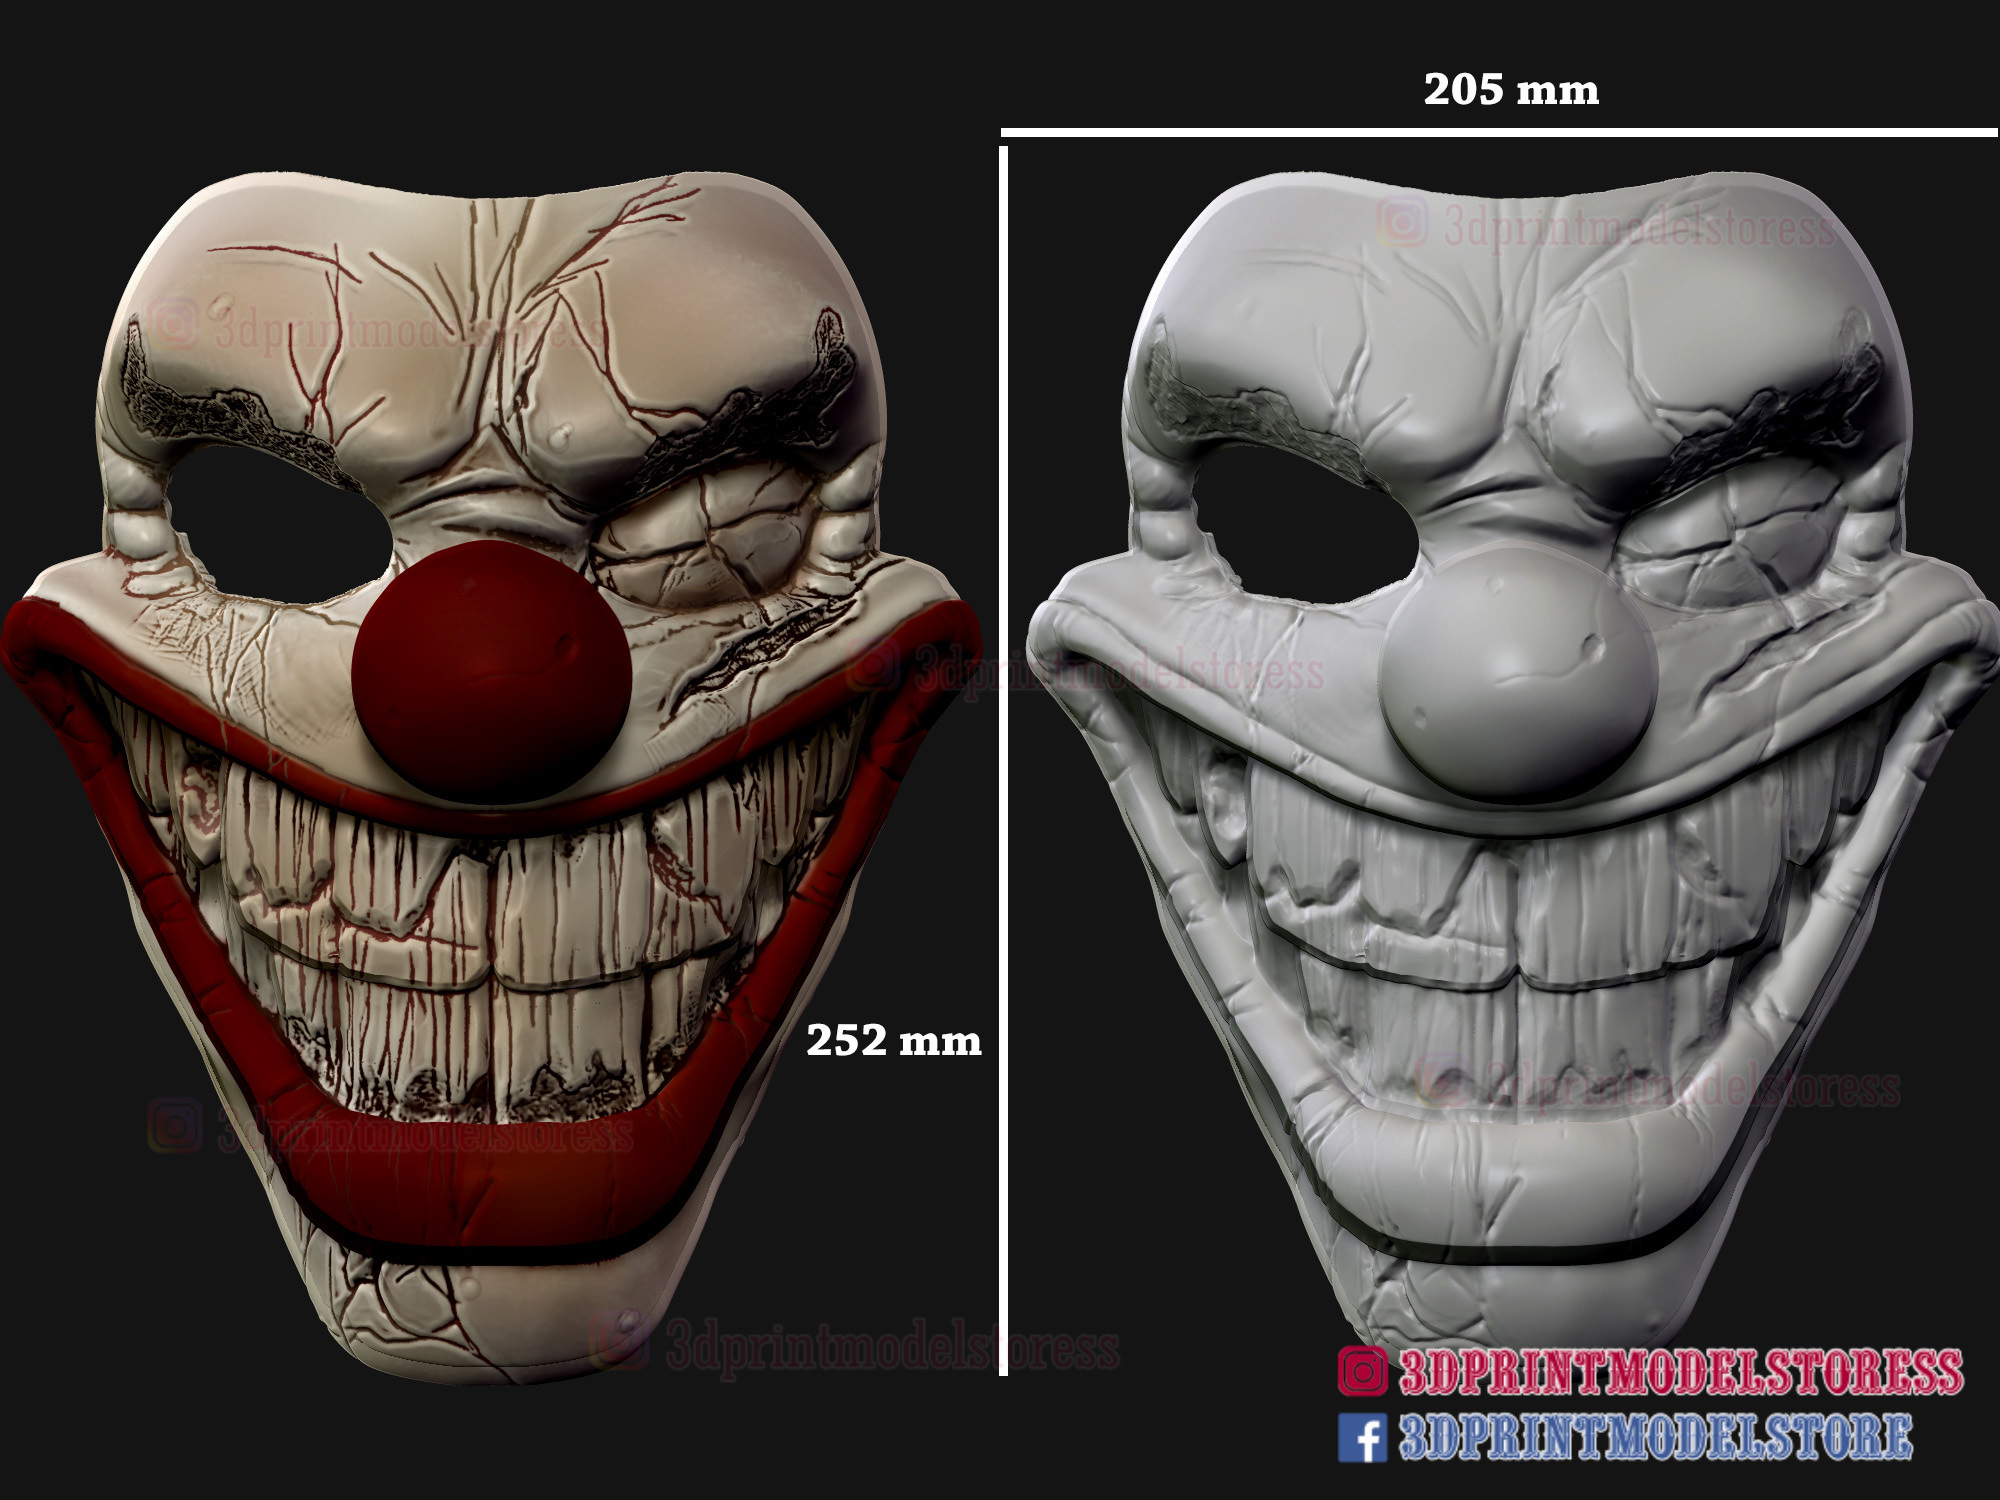 Twisted_metal_killer_clown-12.jpg Download STL file Twisted Metal Killer Clown Mask  • 3D printer model, 3DPrintModelStoreSS